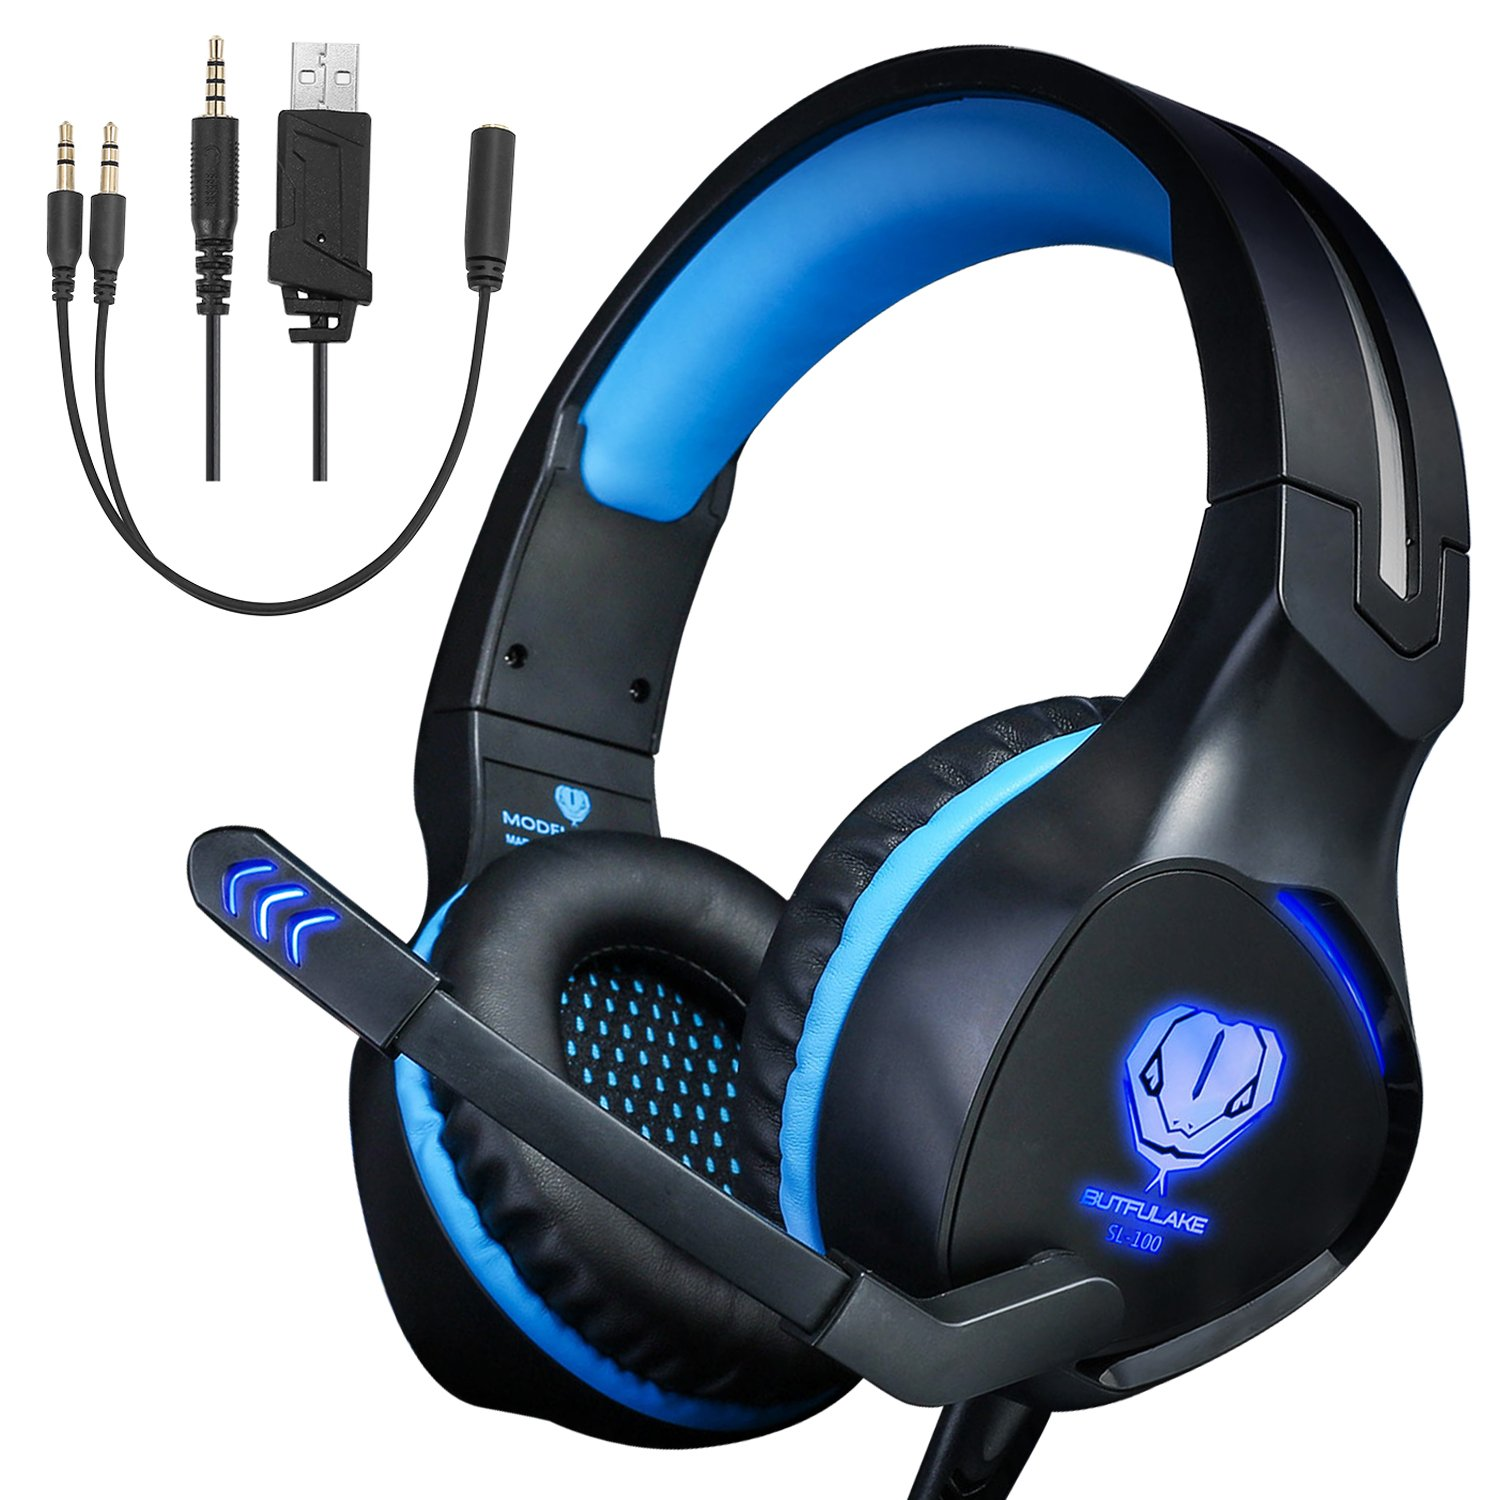 Xbox One Headset,Gaming Headset for PS4 PC Mobile Phone,3.5 mm Gaming Headset LED Light Over-Ear Headphones with Volume Control Microphone for Xbox PS4 Laptop Tablet USB Lighting WSQiWNi Blue